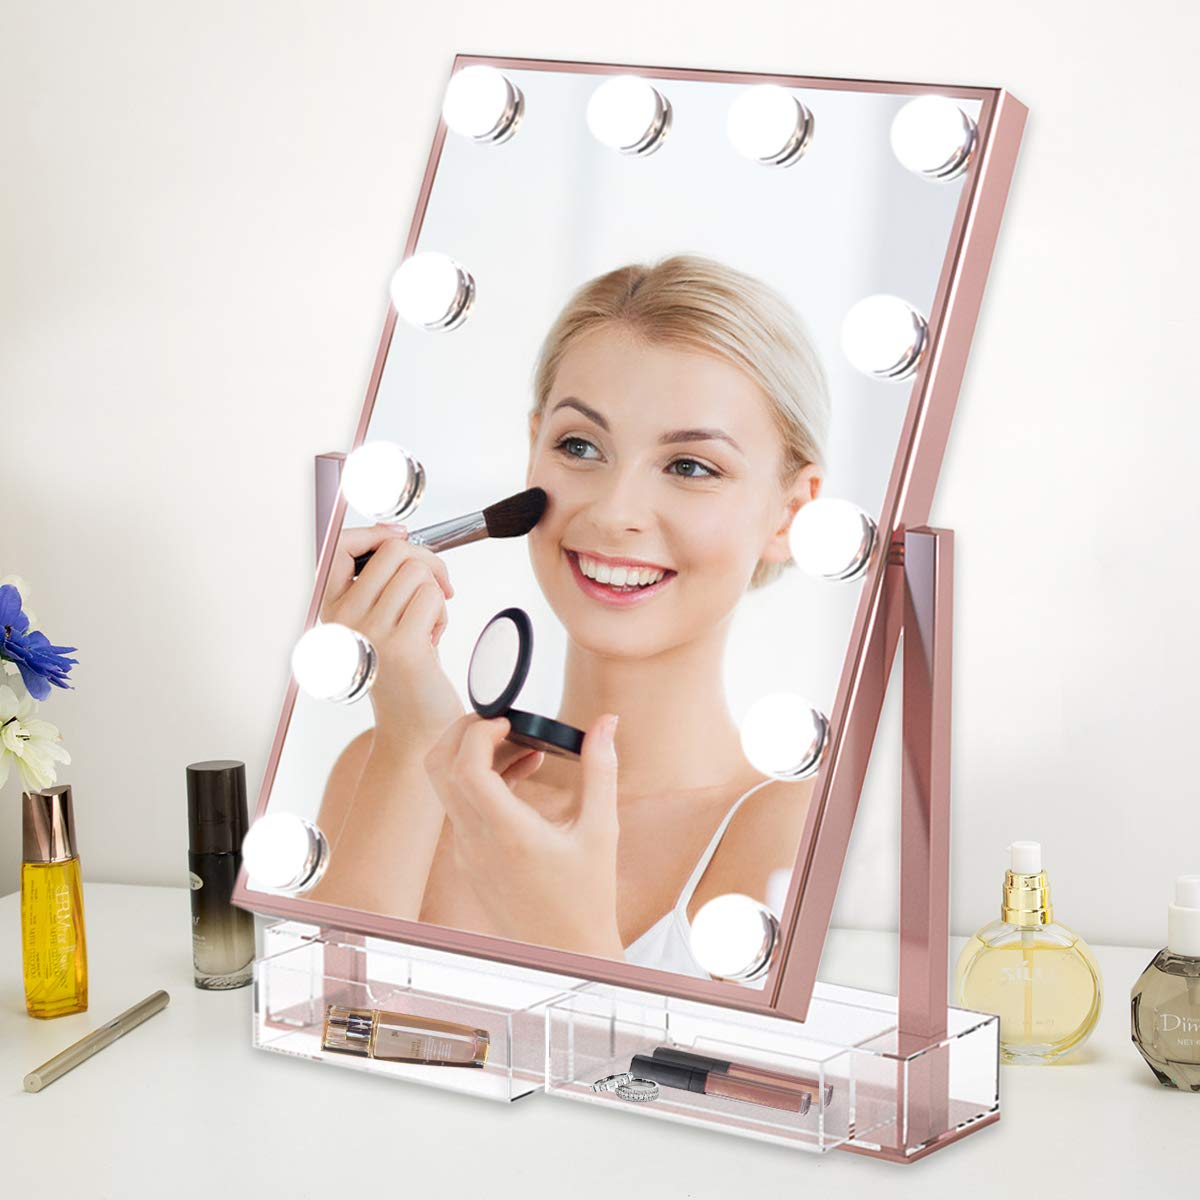 Lighted Makeup Mirror with Acrylic Comestic Organizer Dimmable LED Three Colors Light Bulbs Touch Control Design Free Roration